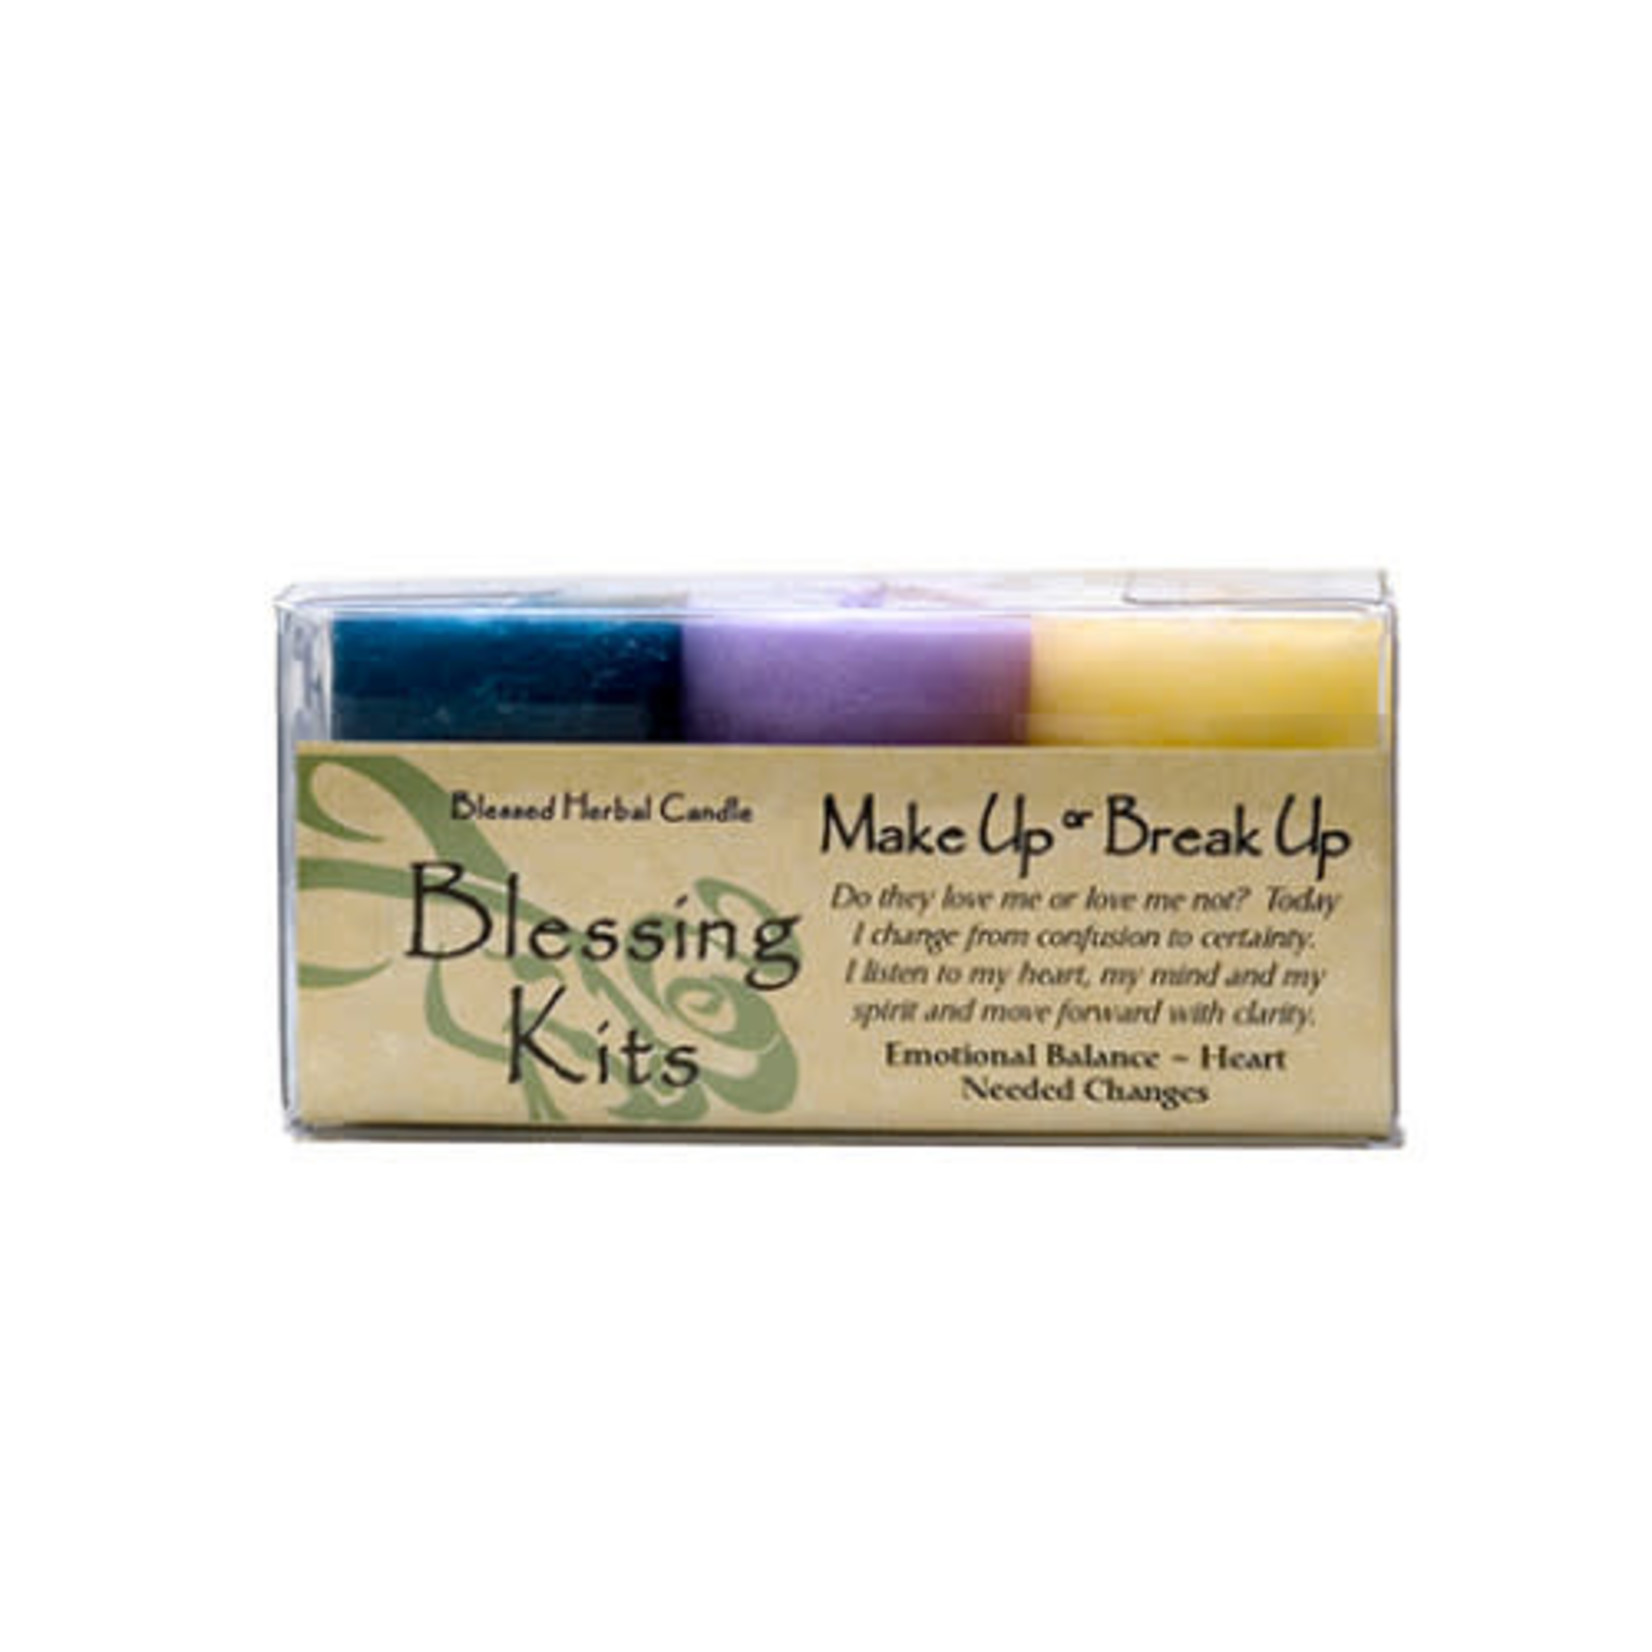 Blessed Kit Make Up or Break Up Candle Kit